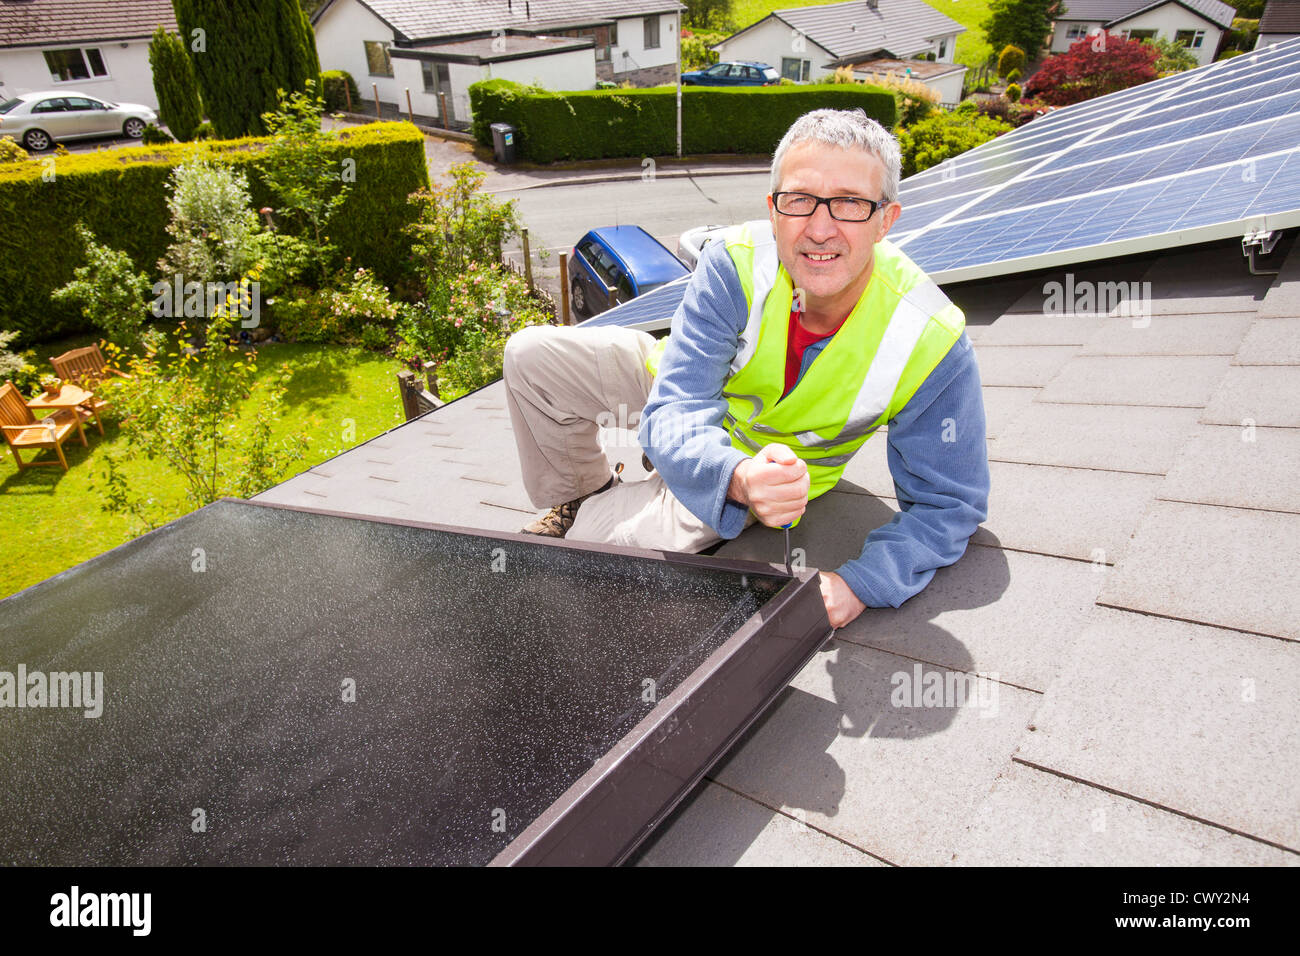 A workman fitting solar thermal panels for heating water, to a house roof in Ambleside, Cumbria, UK, - Stock Image